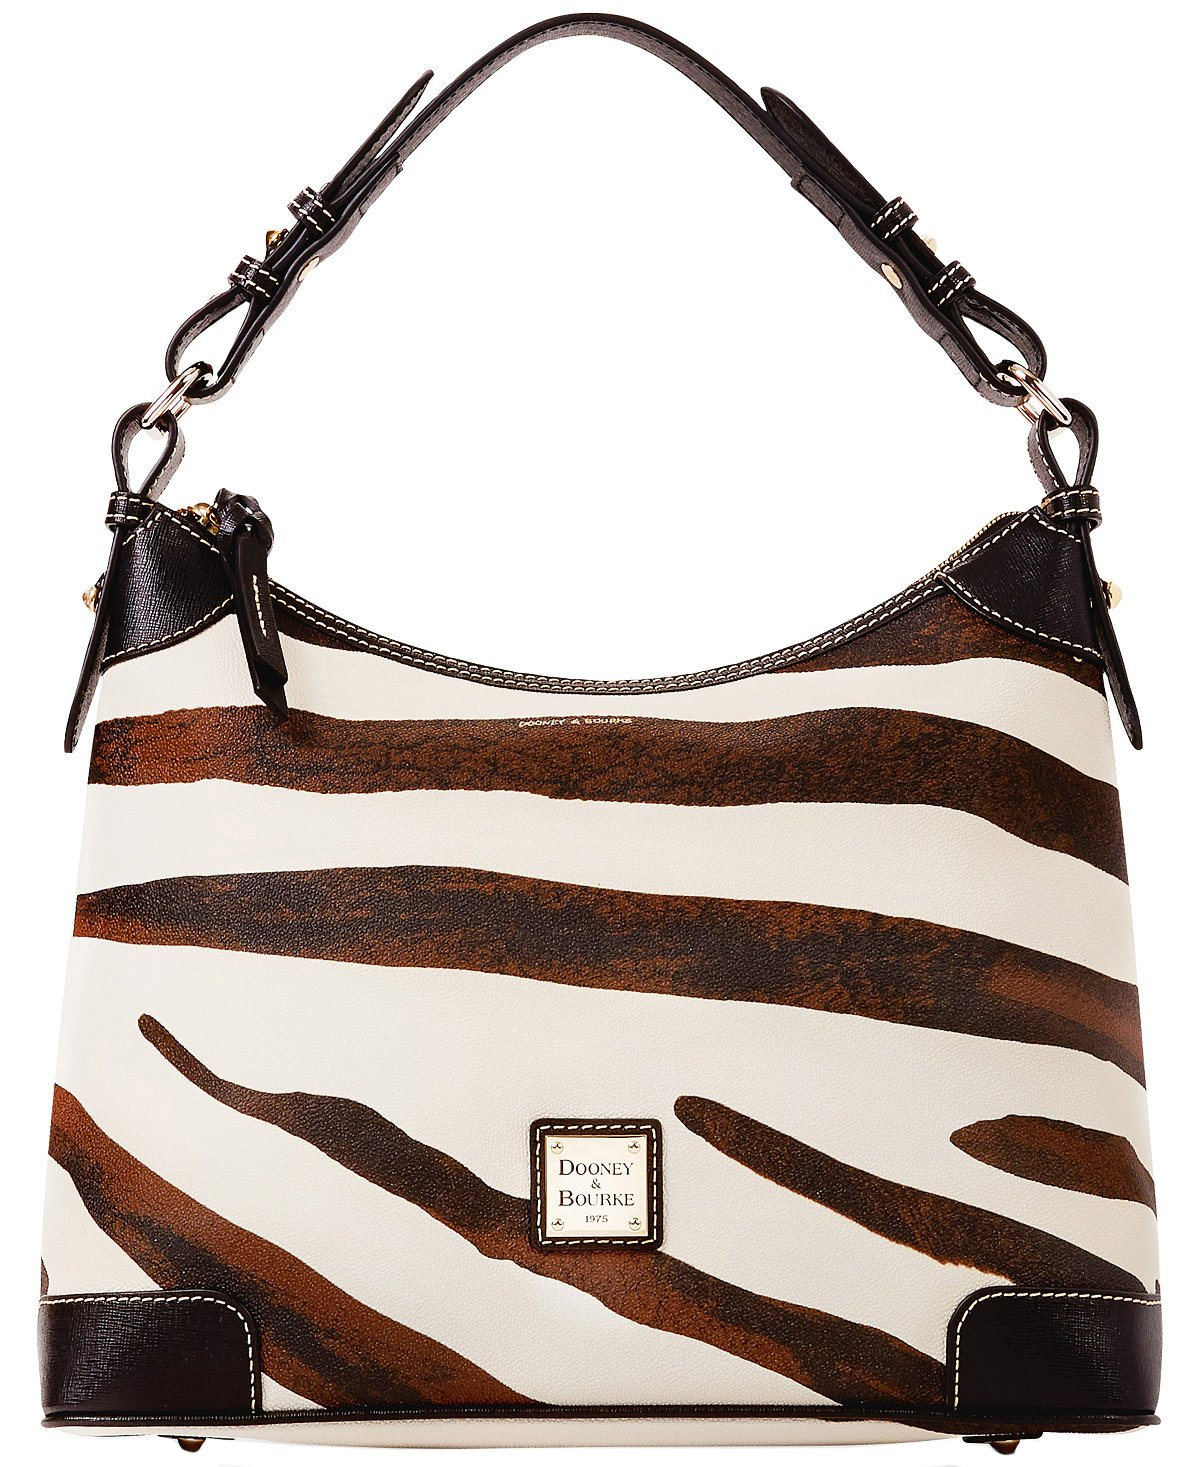 Dooney & Bourke Serengeti Medium Hobo (Zebra/Black)